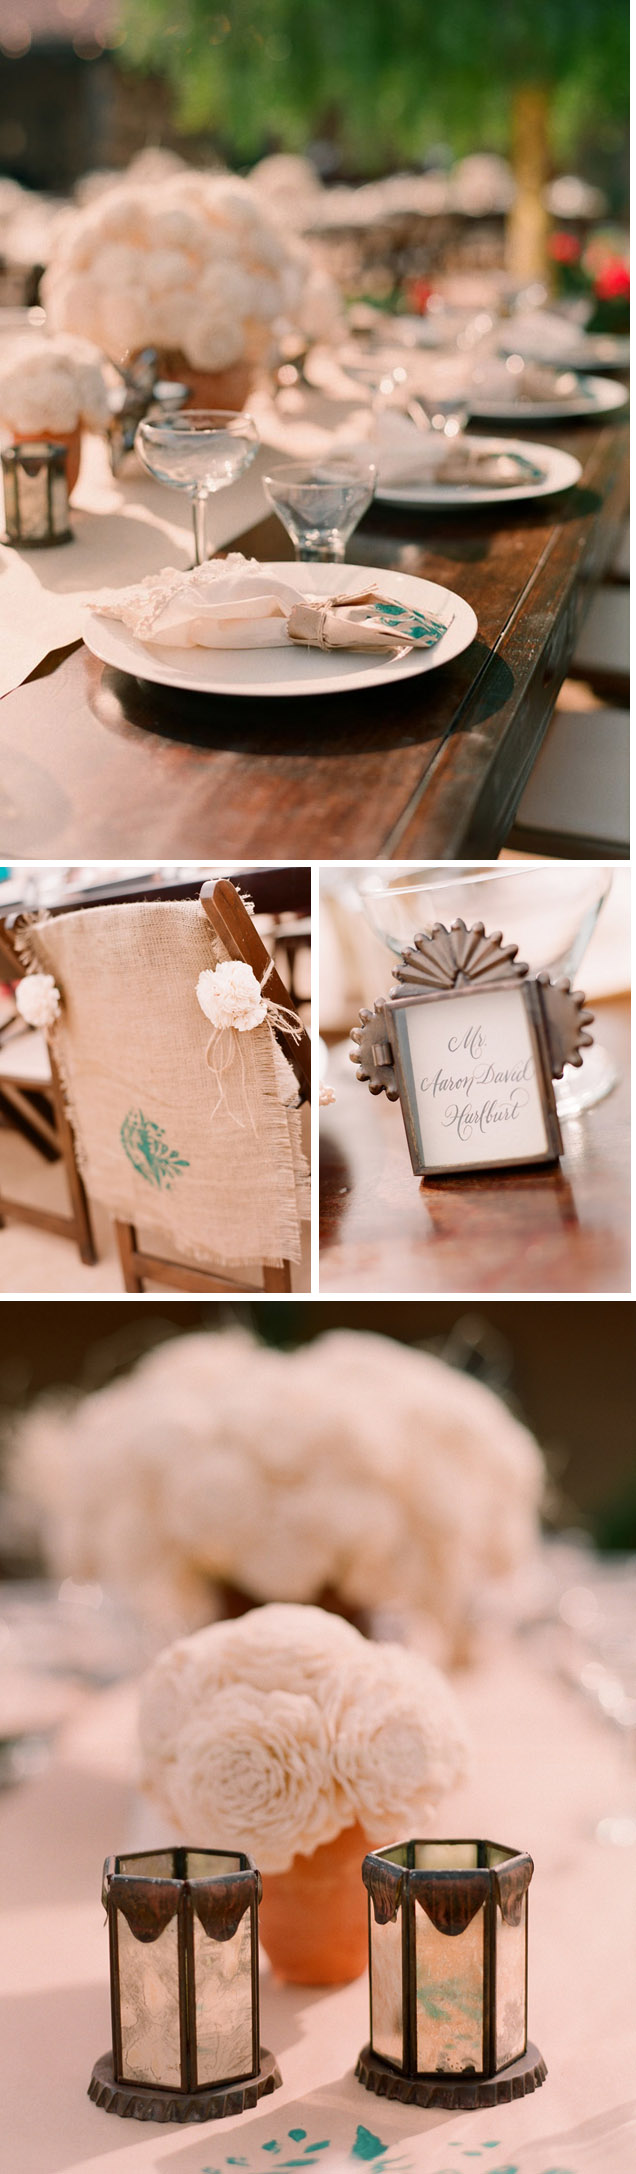 Real Party: Mexican Fiesta Rehearsal Dinner | Kelly Oshiro